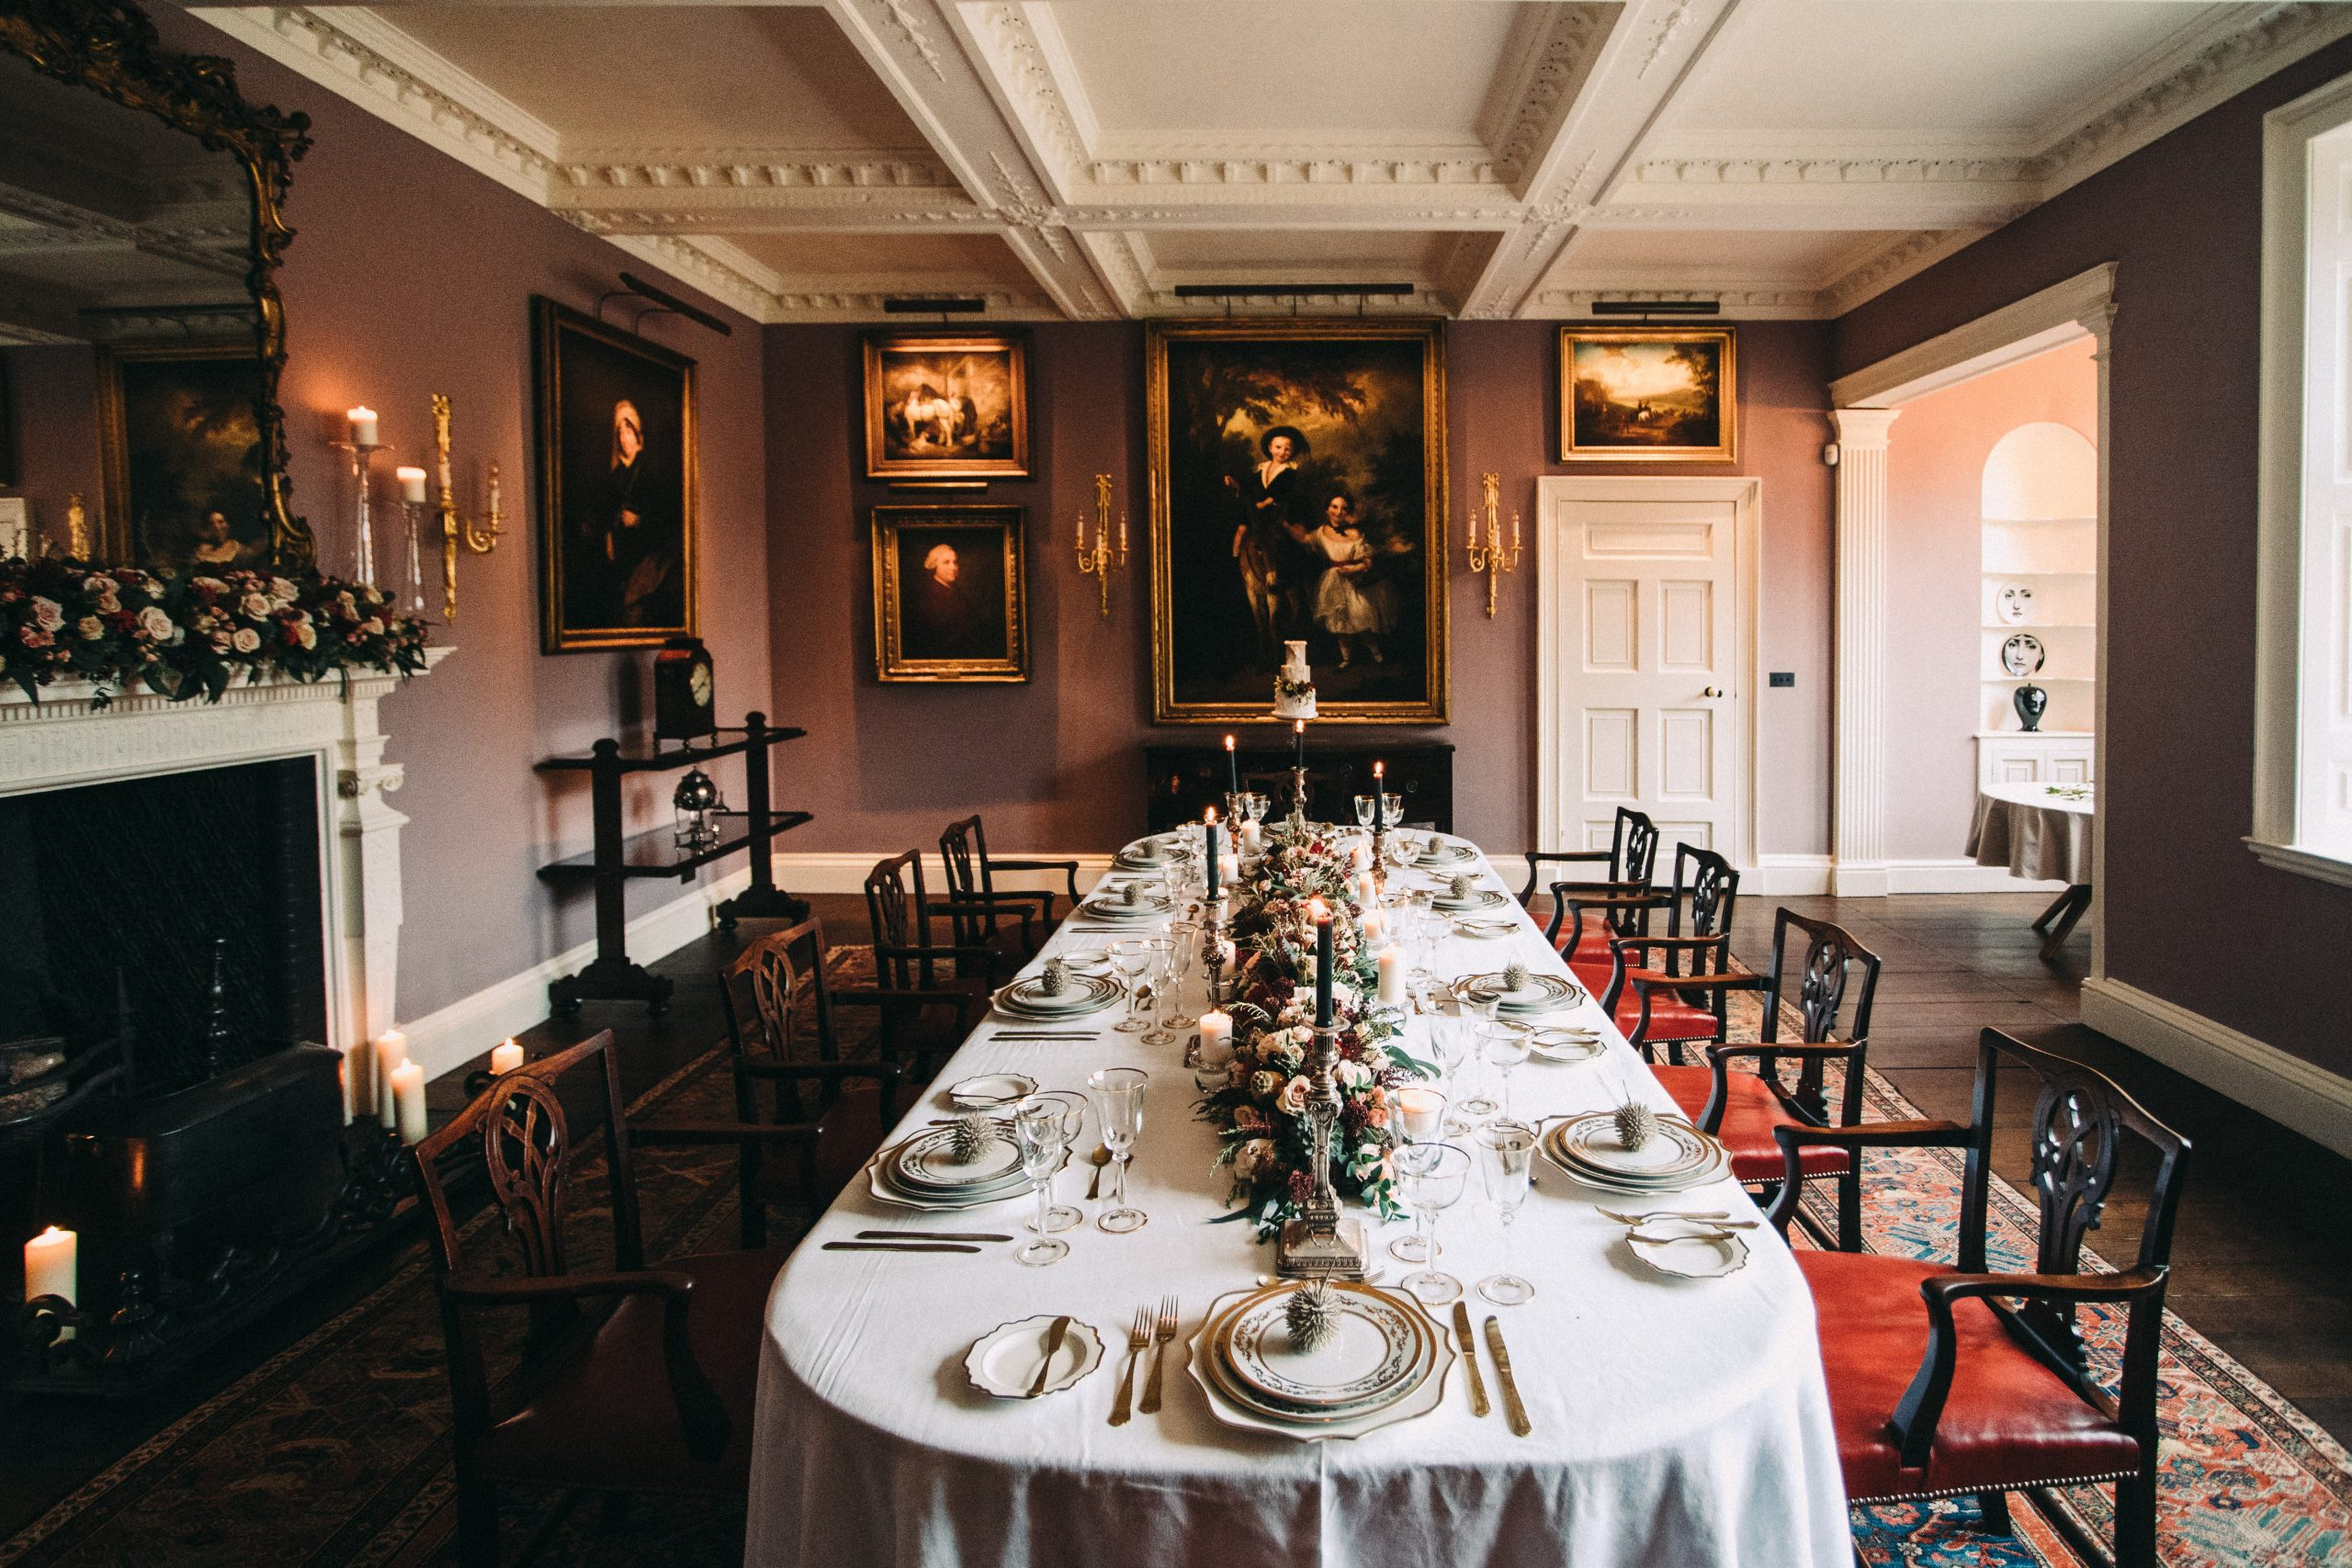 The Dining Room/Hall - Photography by The Lawsons